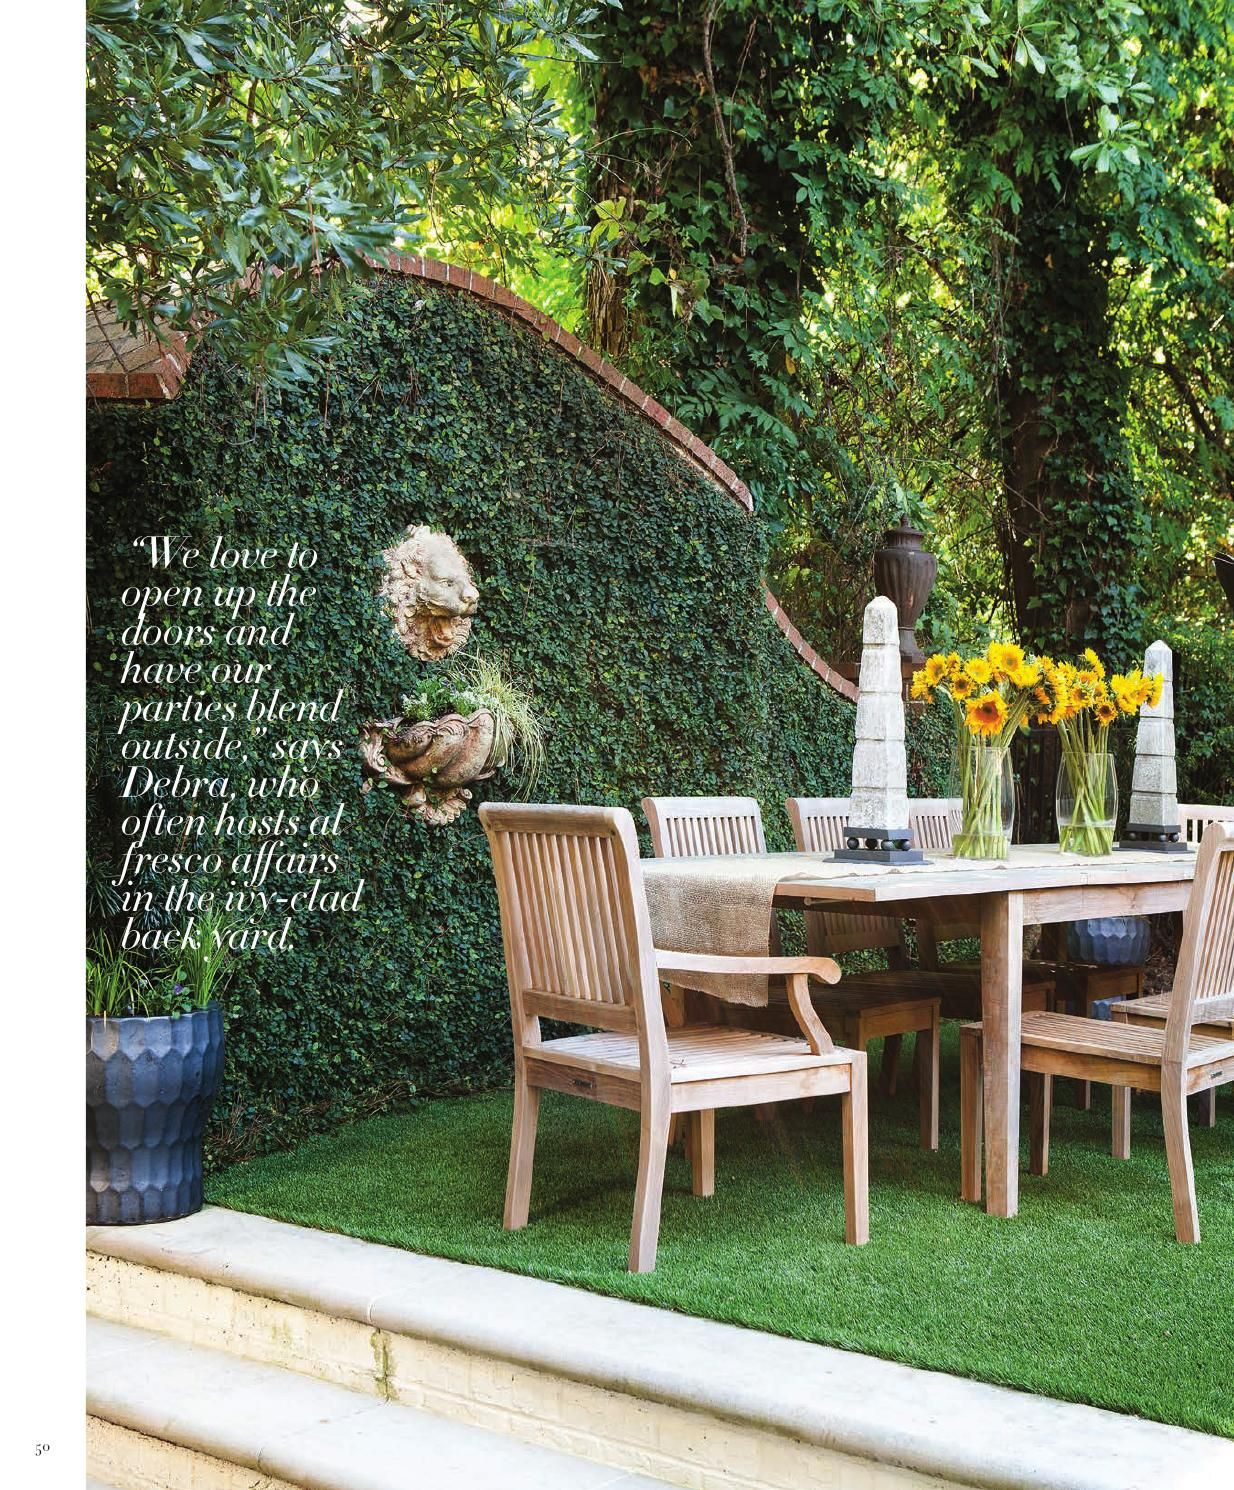 Atlanta Homes & Lifestyles March 2014 issue Outdoor